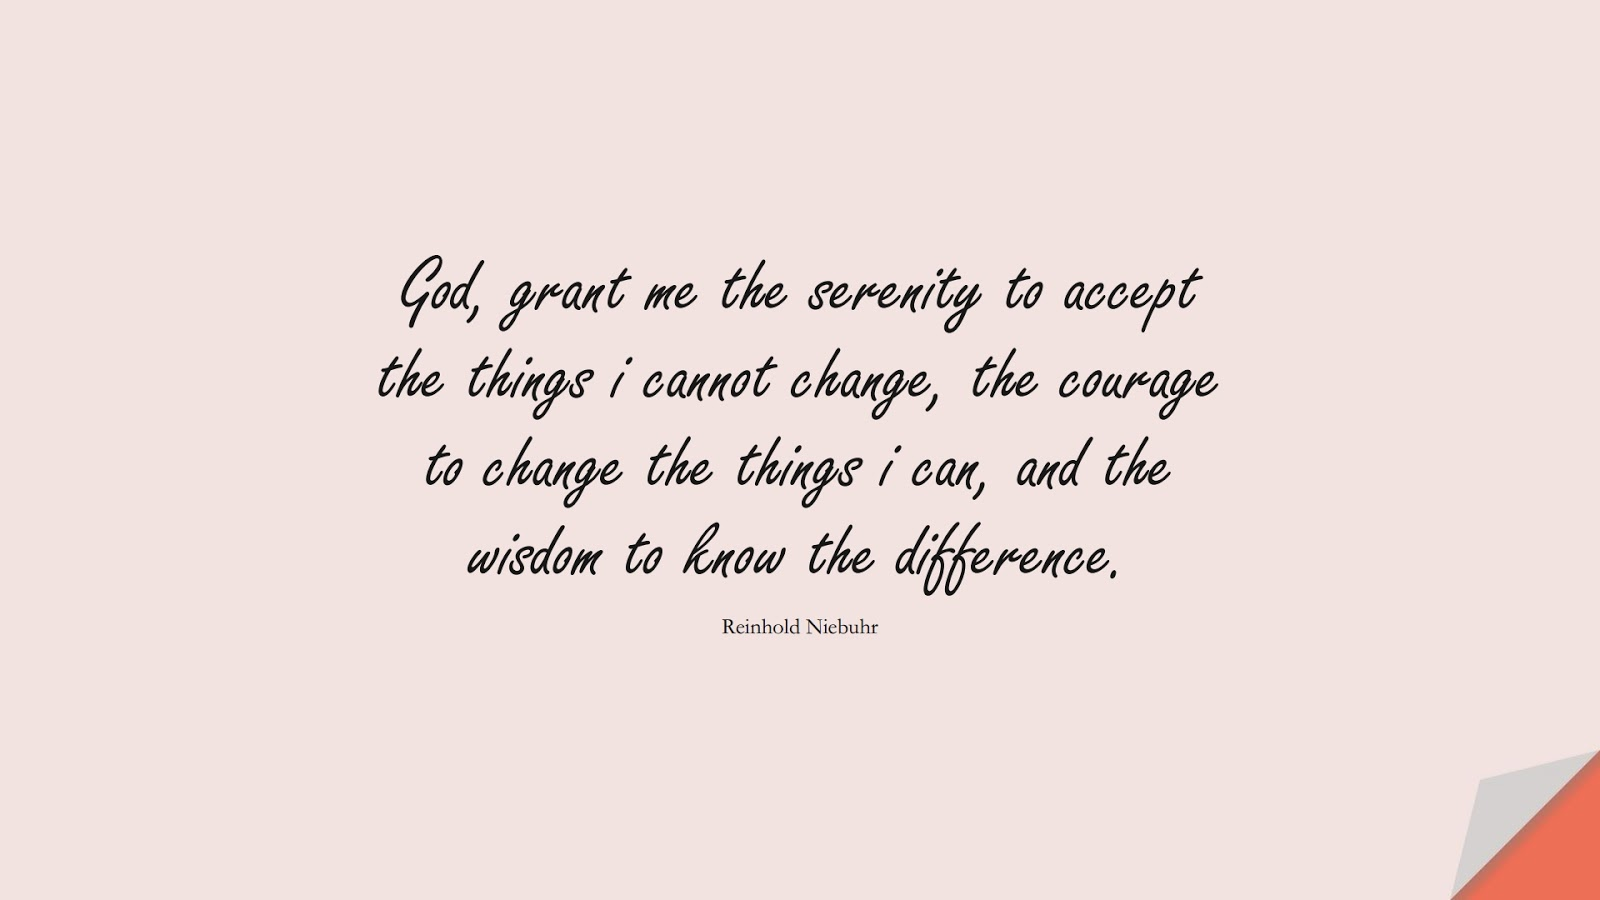 God, grant me the serenity to accept the things i cannot change, the courage to change the things i can, and the wisdom to know the difference. (Reinhold Niebuhr);  #HappinessQuotes